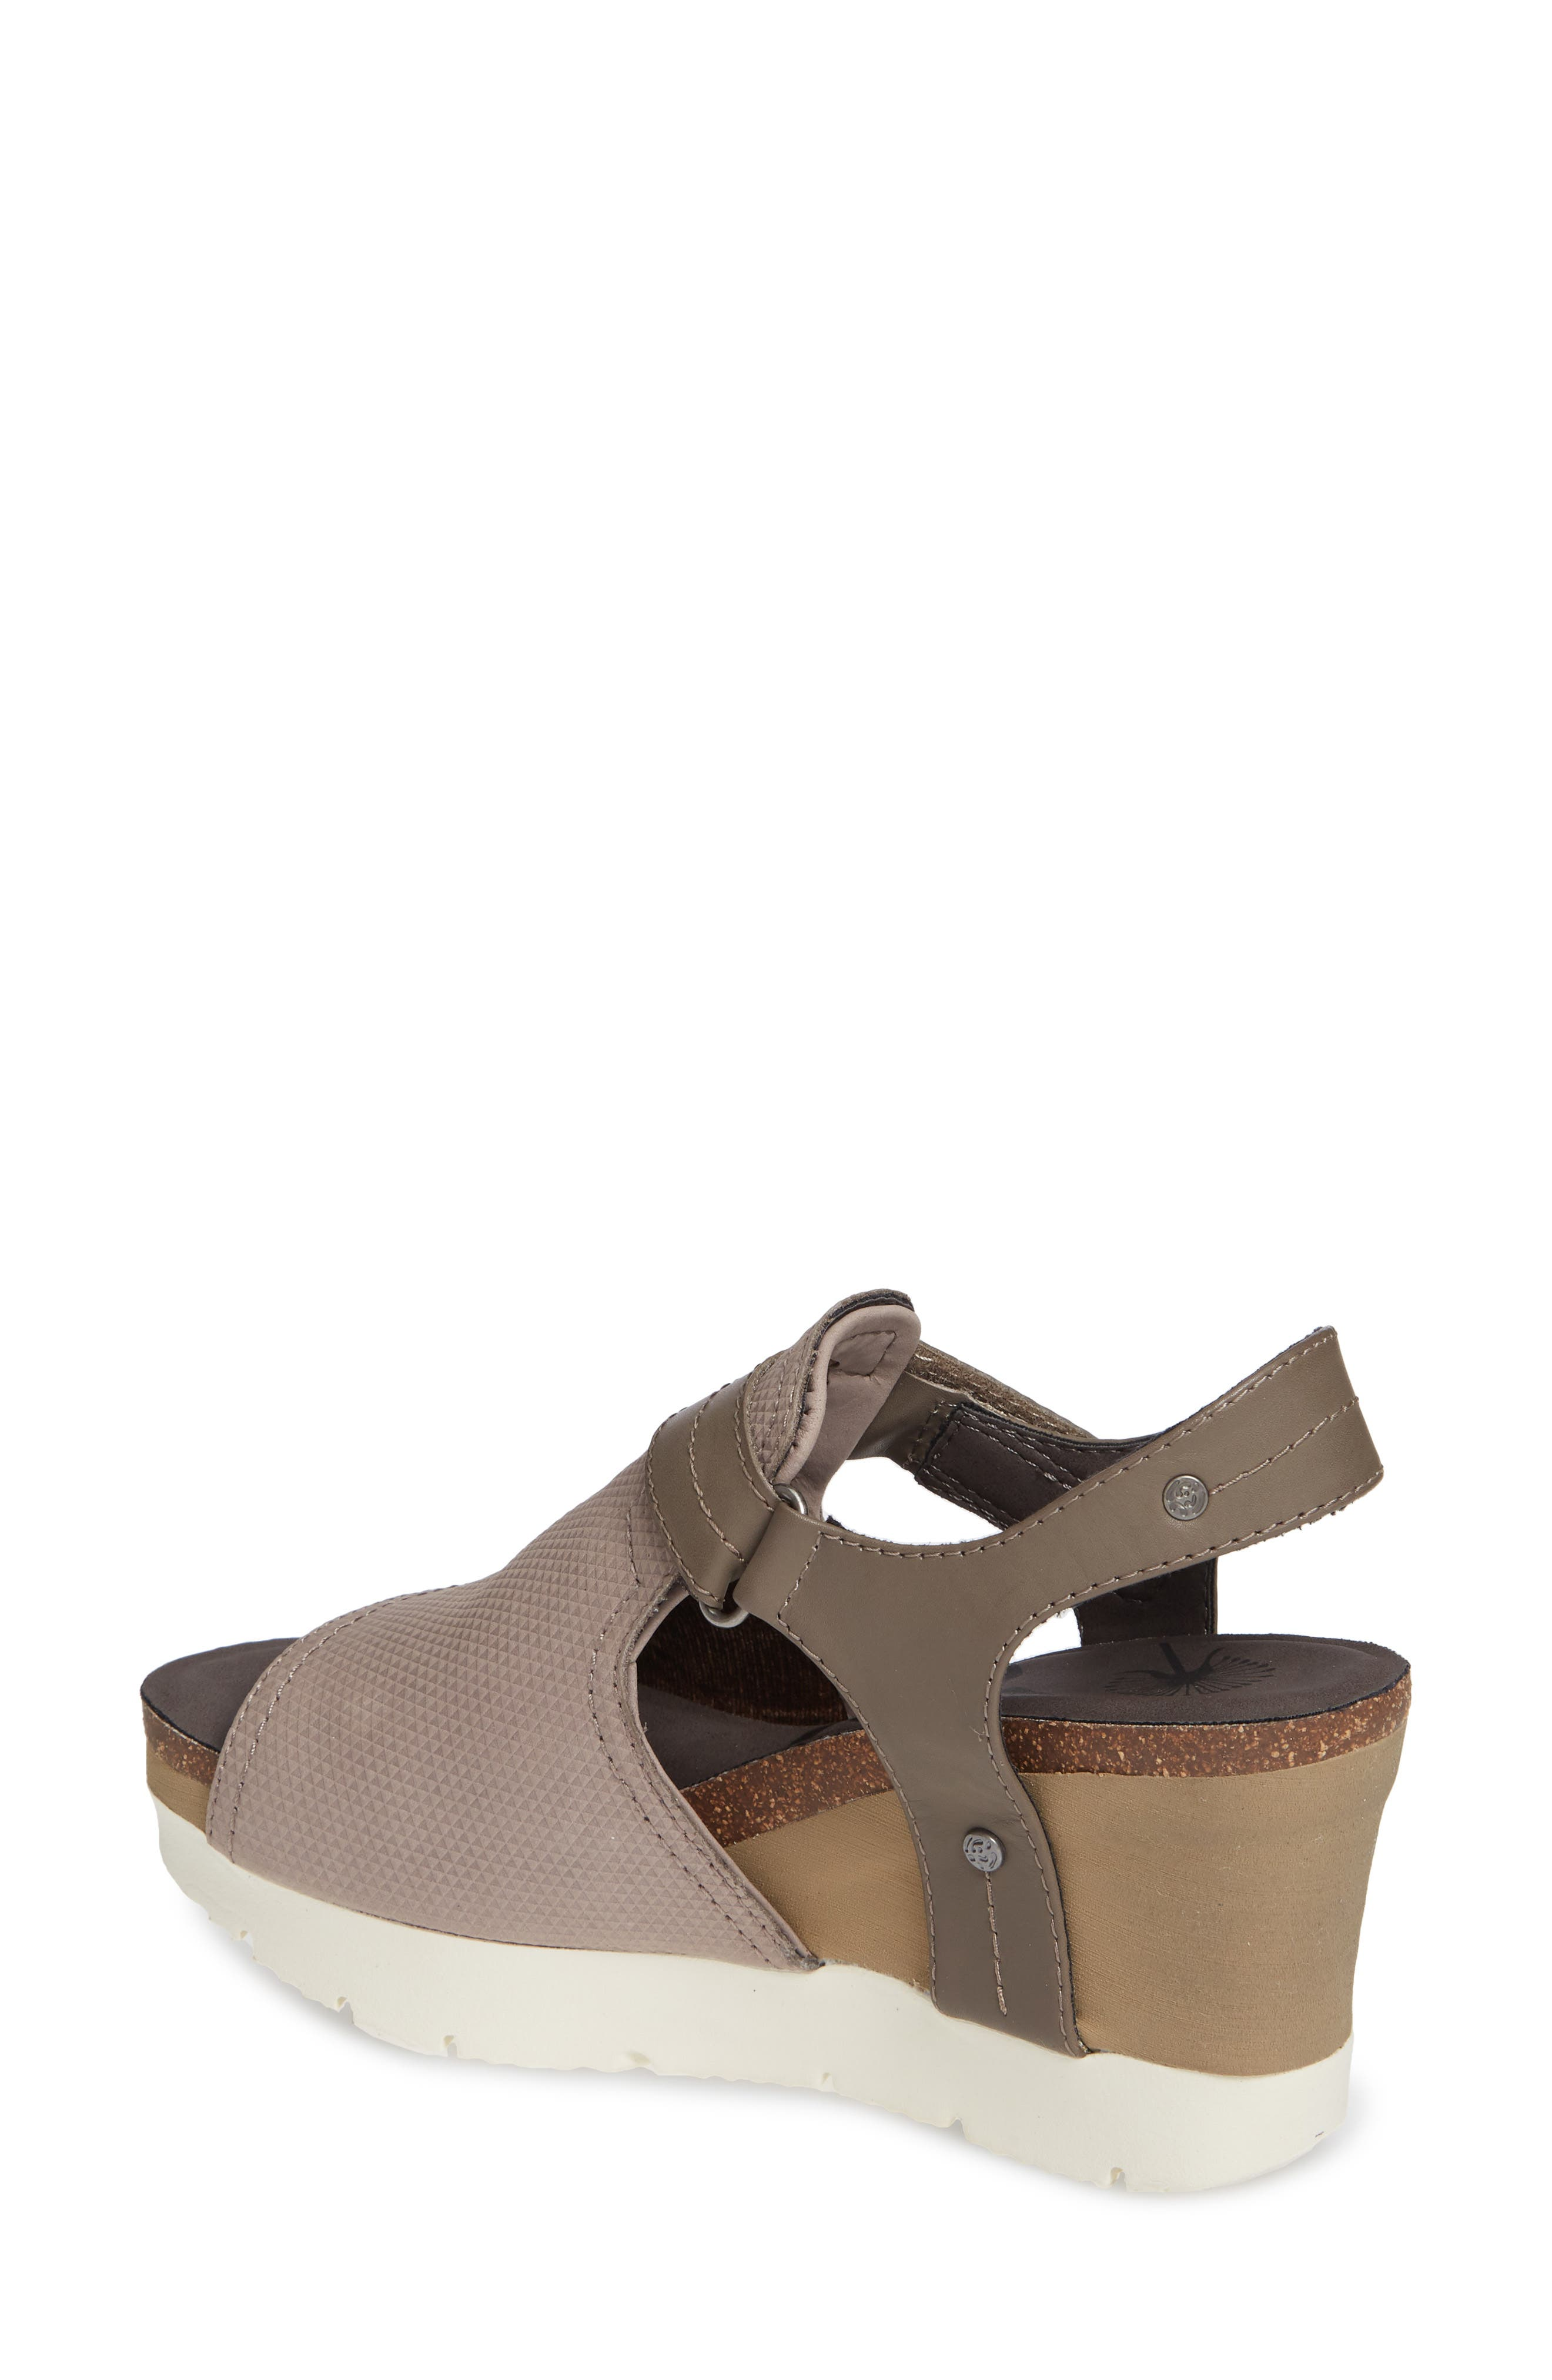 Waypoint Wedge Sandal,                             Alternate thumbnail 2, color,                             CACAO LEATHER